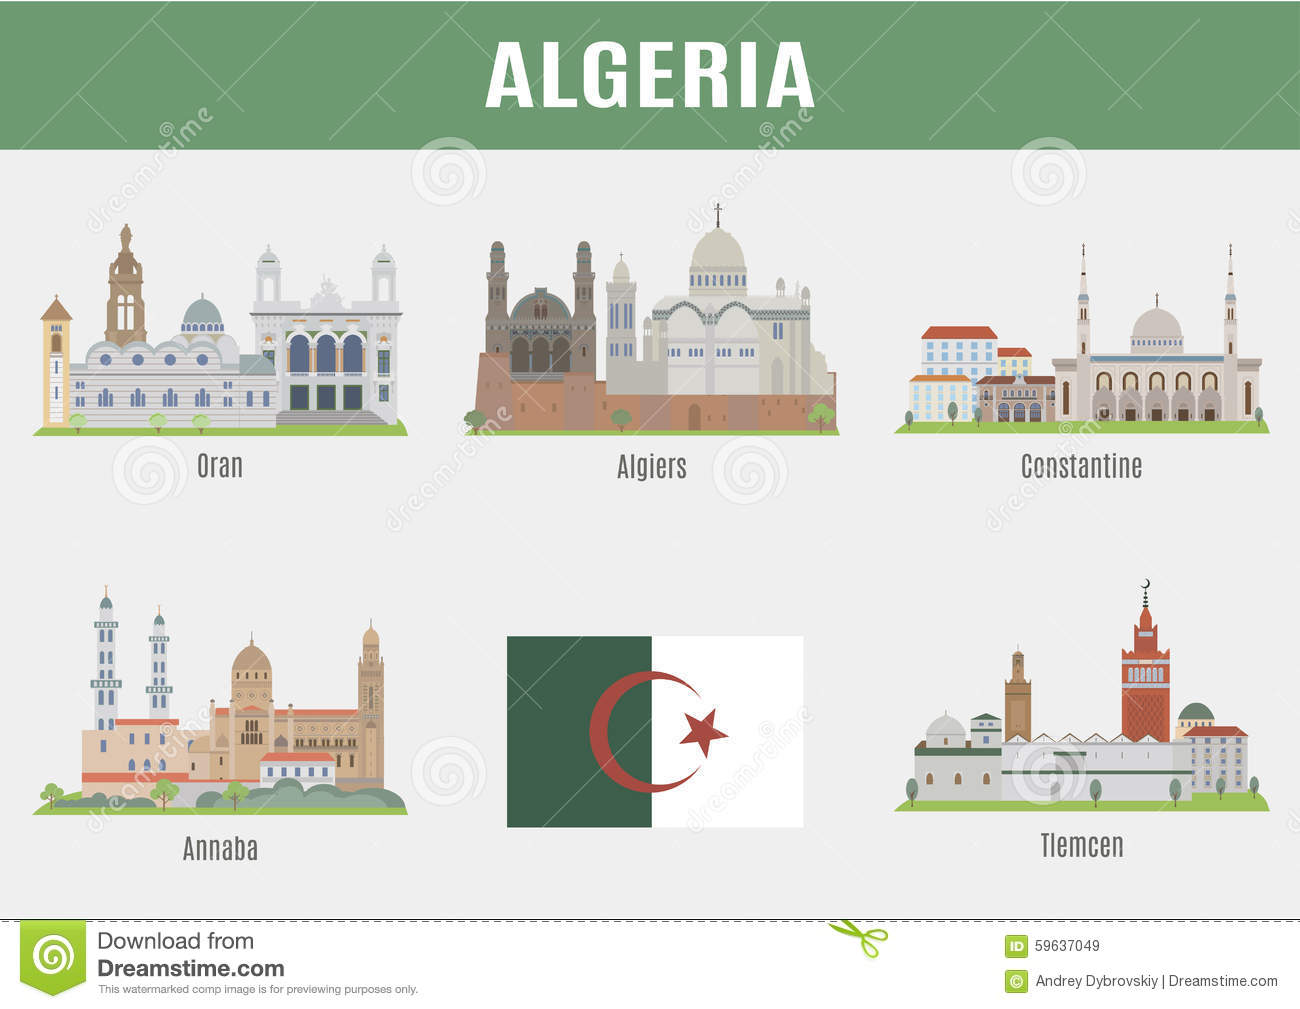 Algeria clipart #10, Download drawings